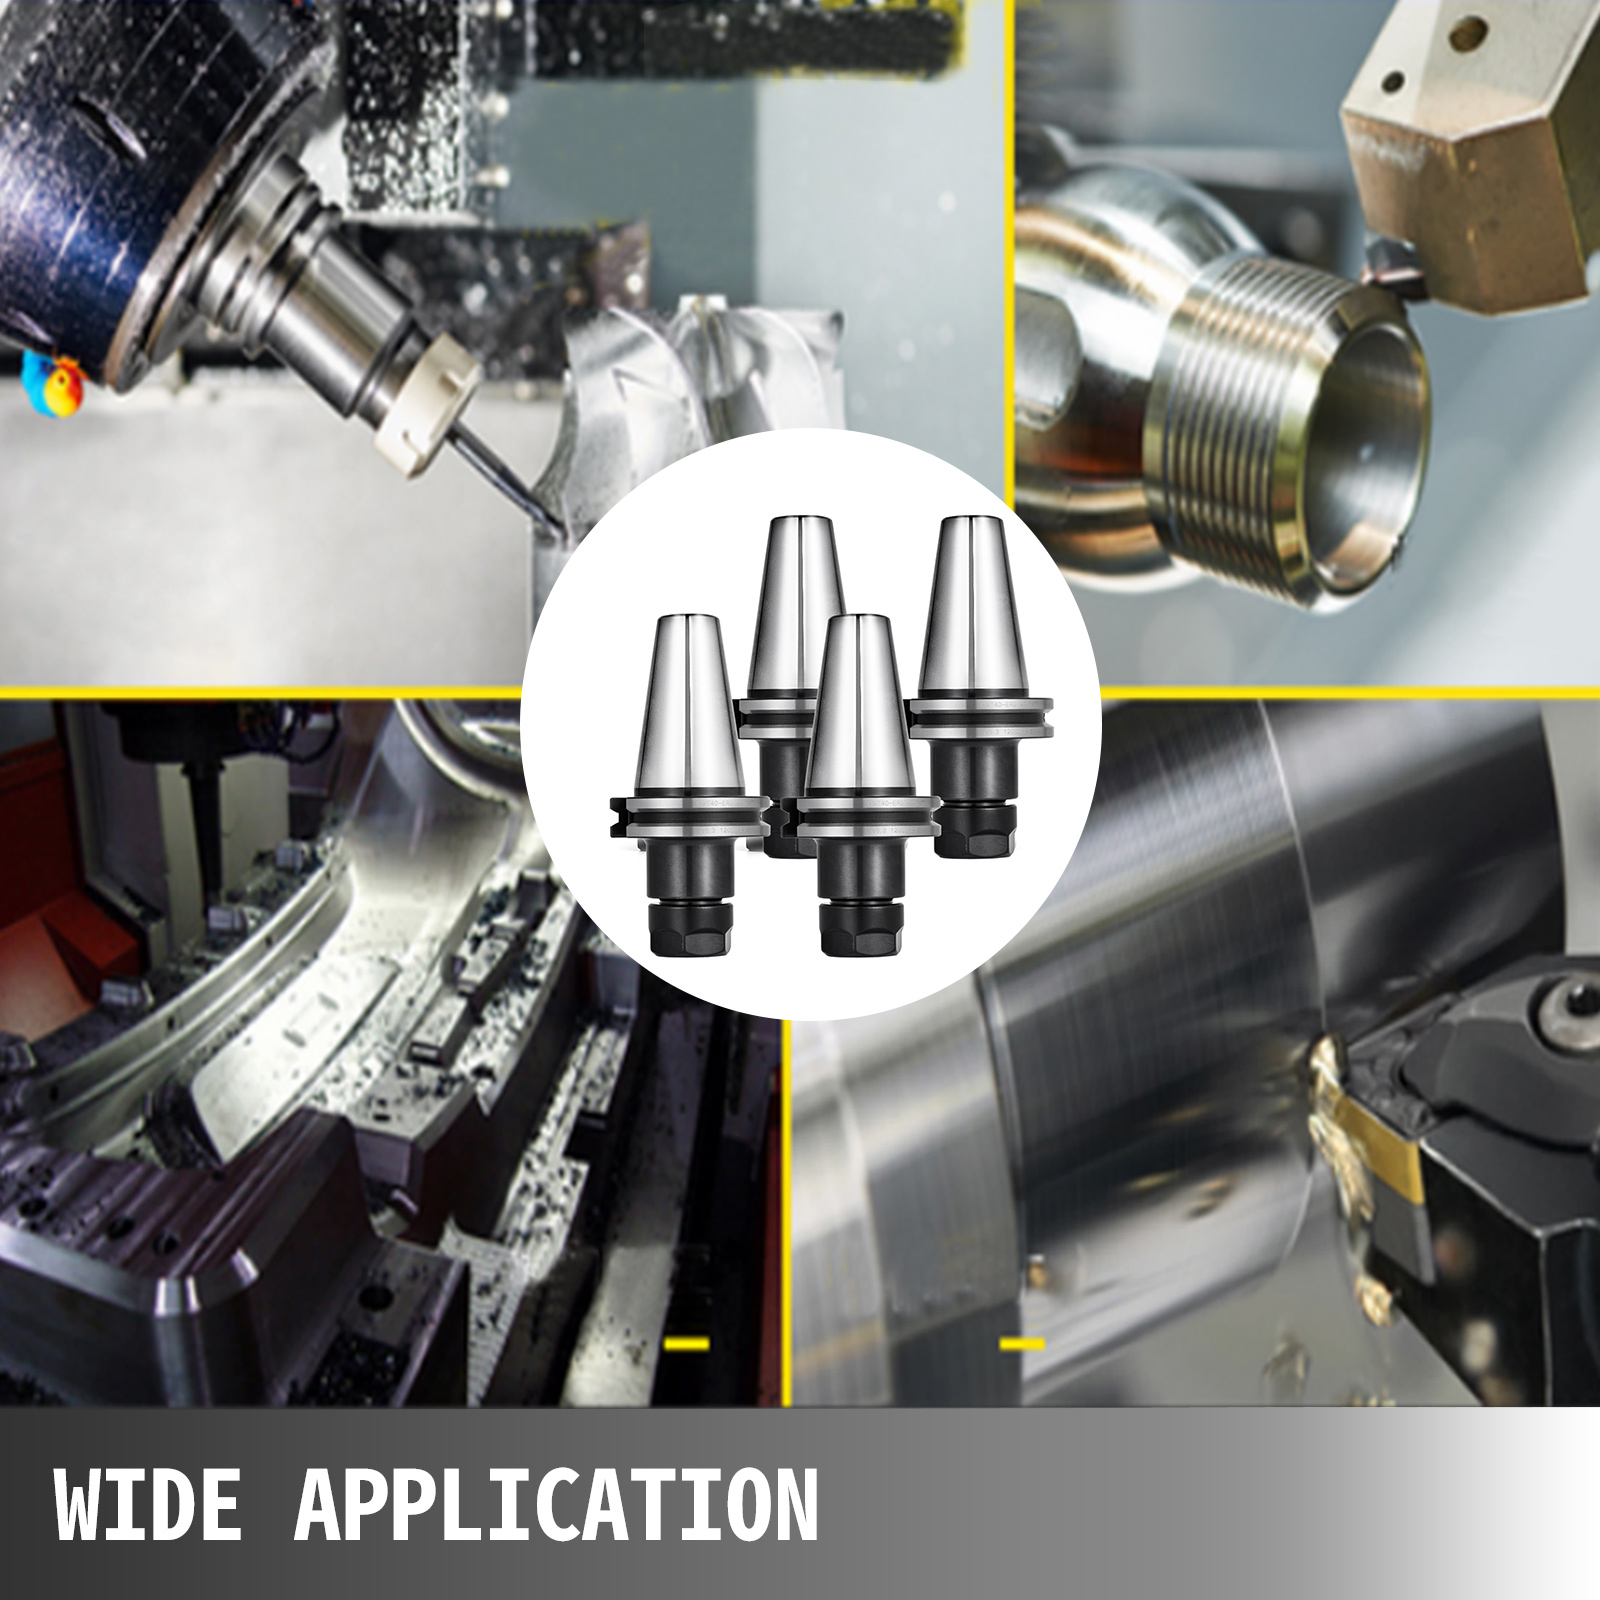 CAT40 Precision Tool Holder CNC Machining Collet Chuck 20000RPM Pull Stud for Drilling Machines Grinding Machines Lathes ZXY-NAN Collet Chuck Tool Holder